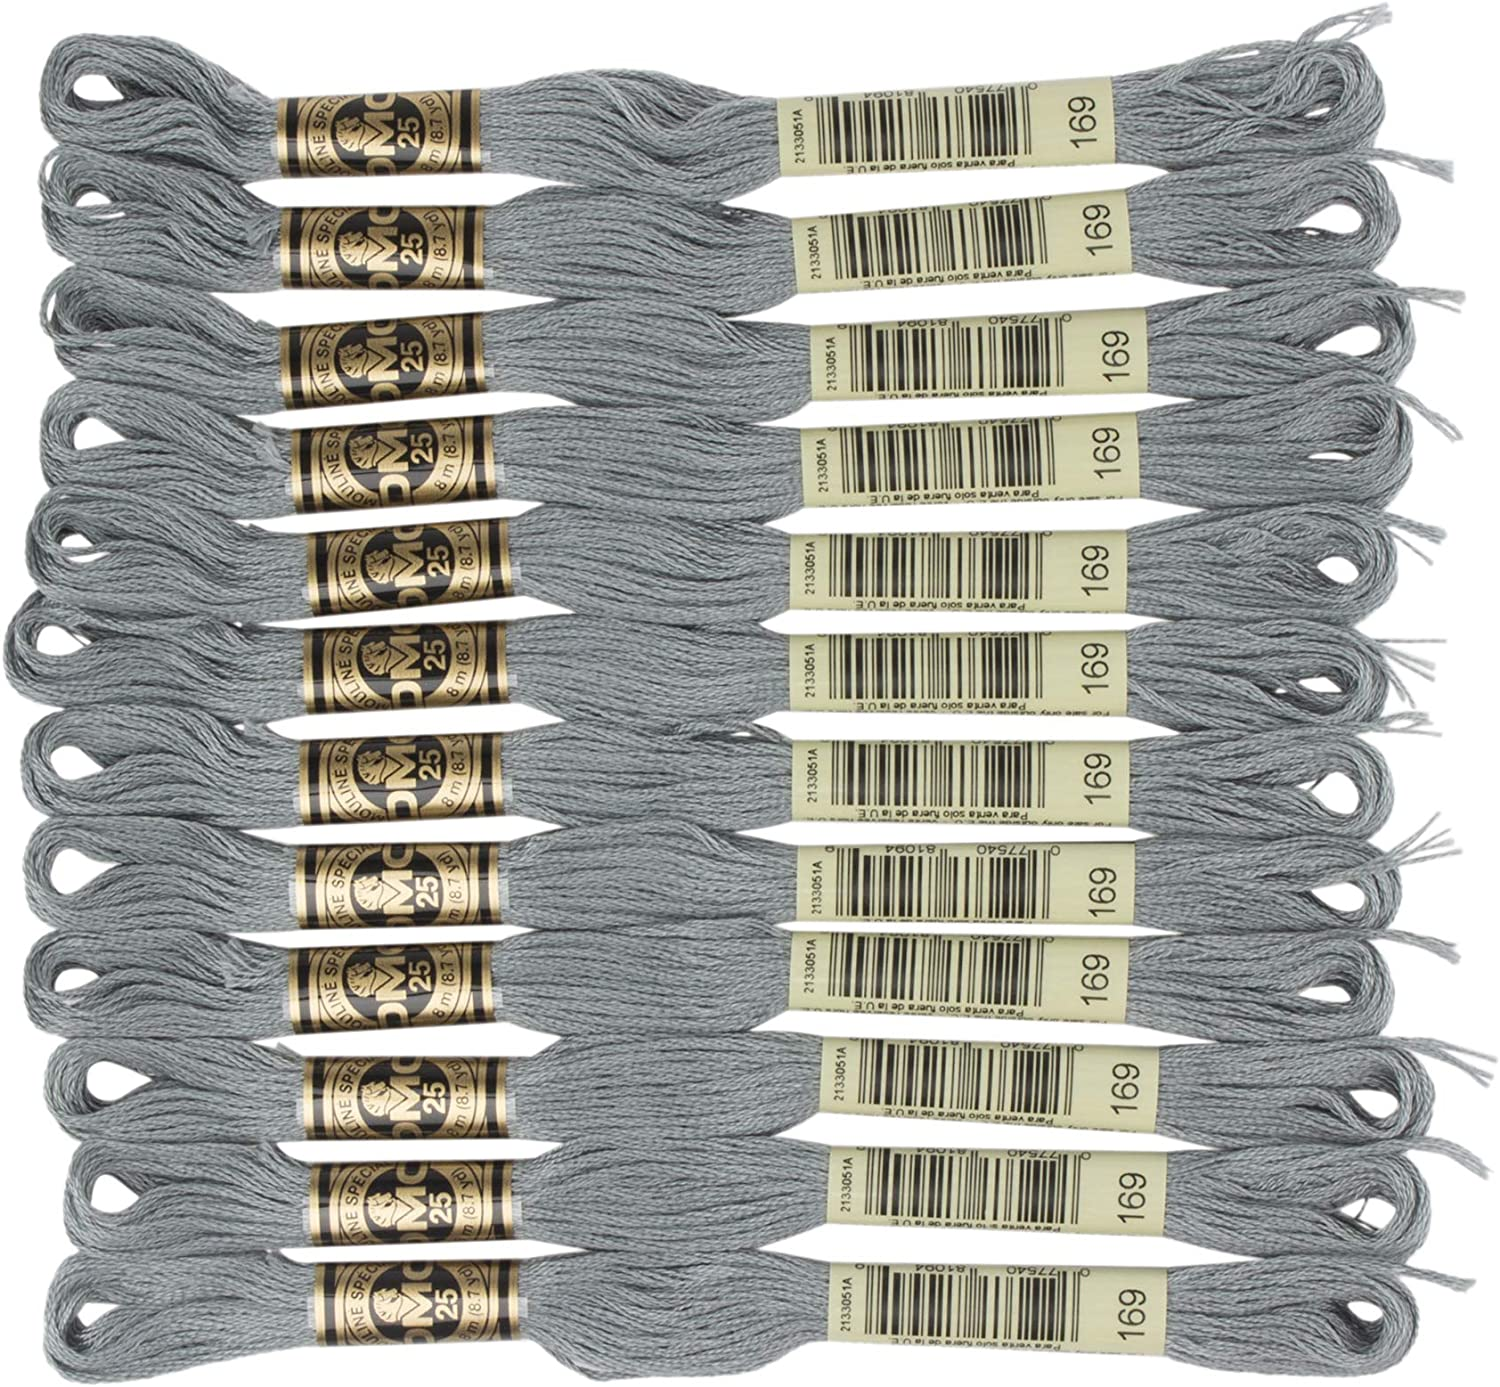 DMC 6-Strand Embroidery Cotton Pewter Light Floss Max 65% OFF Max 60% OFF